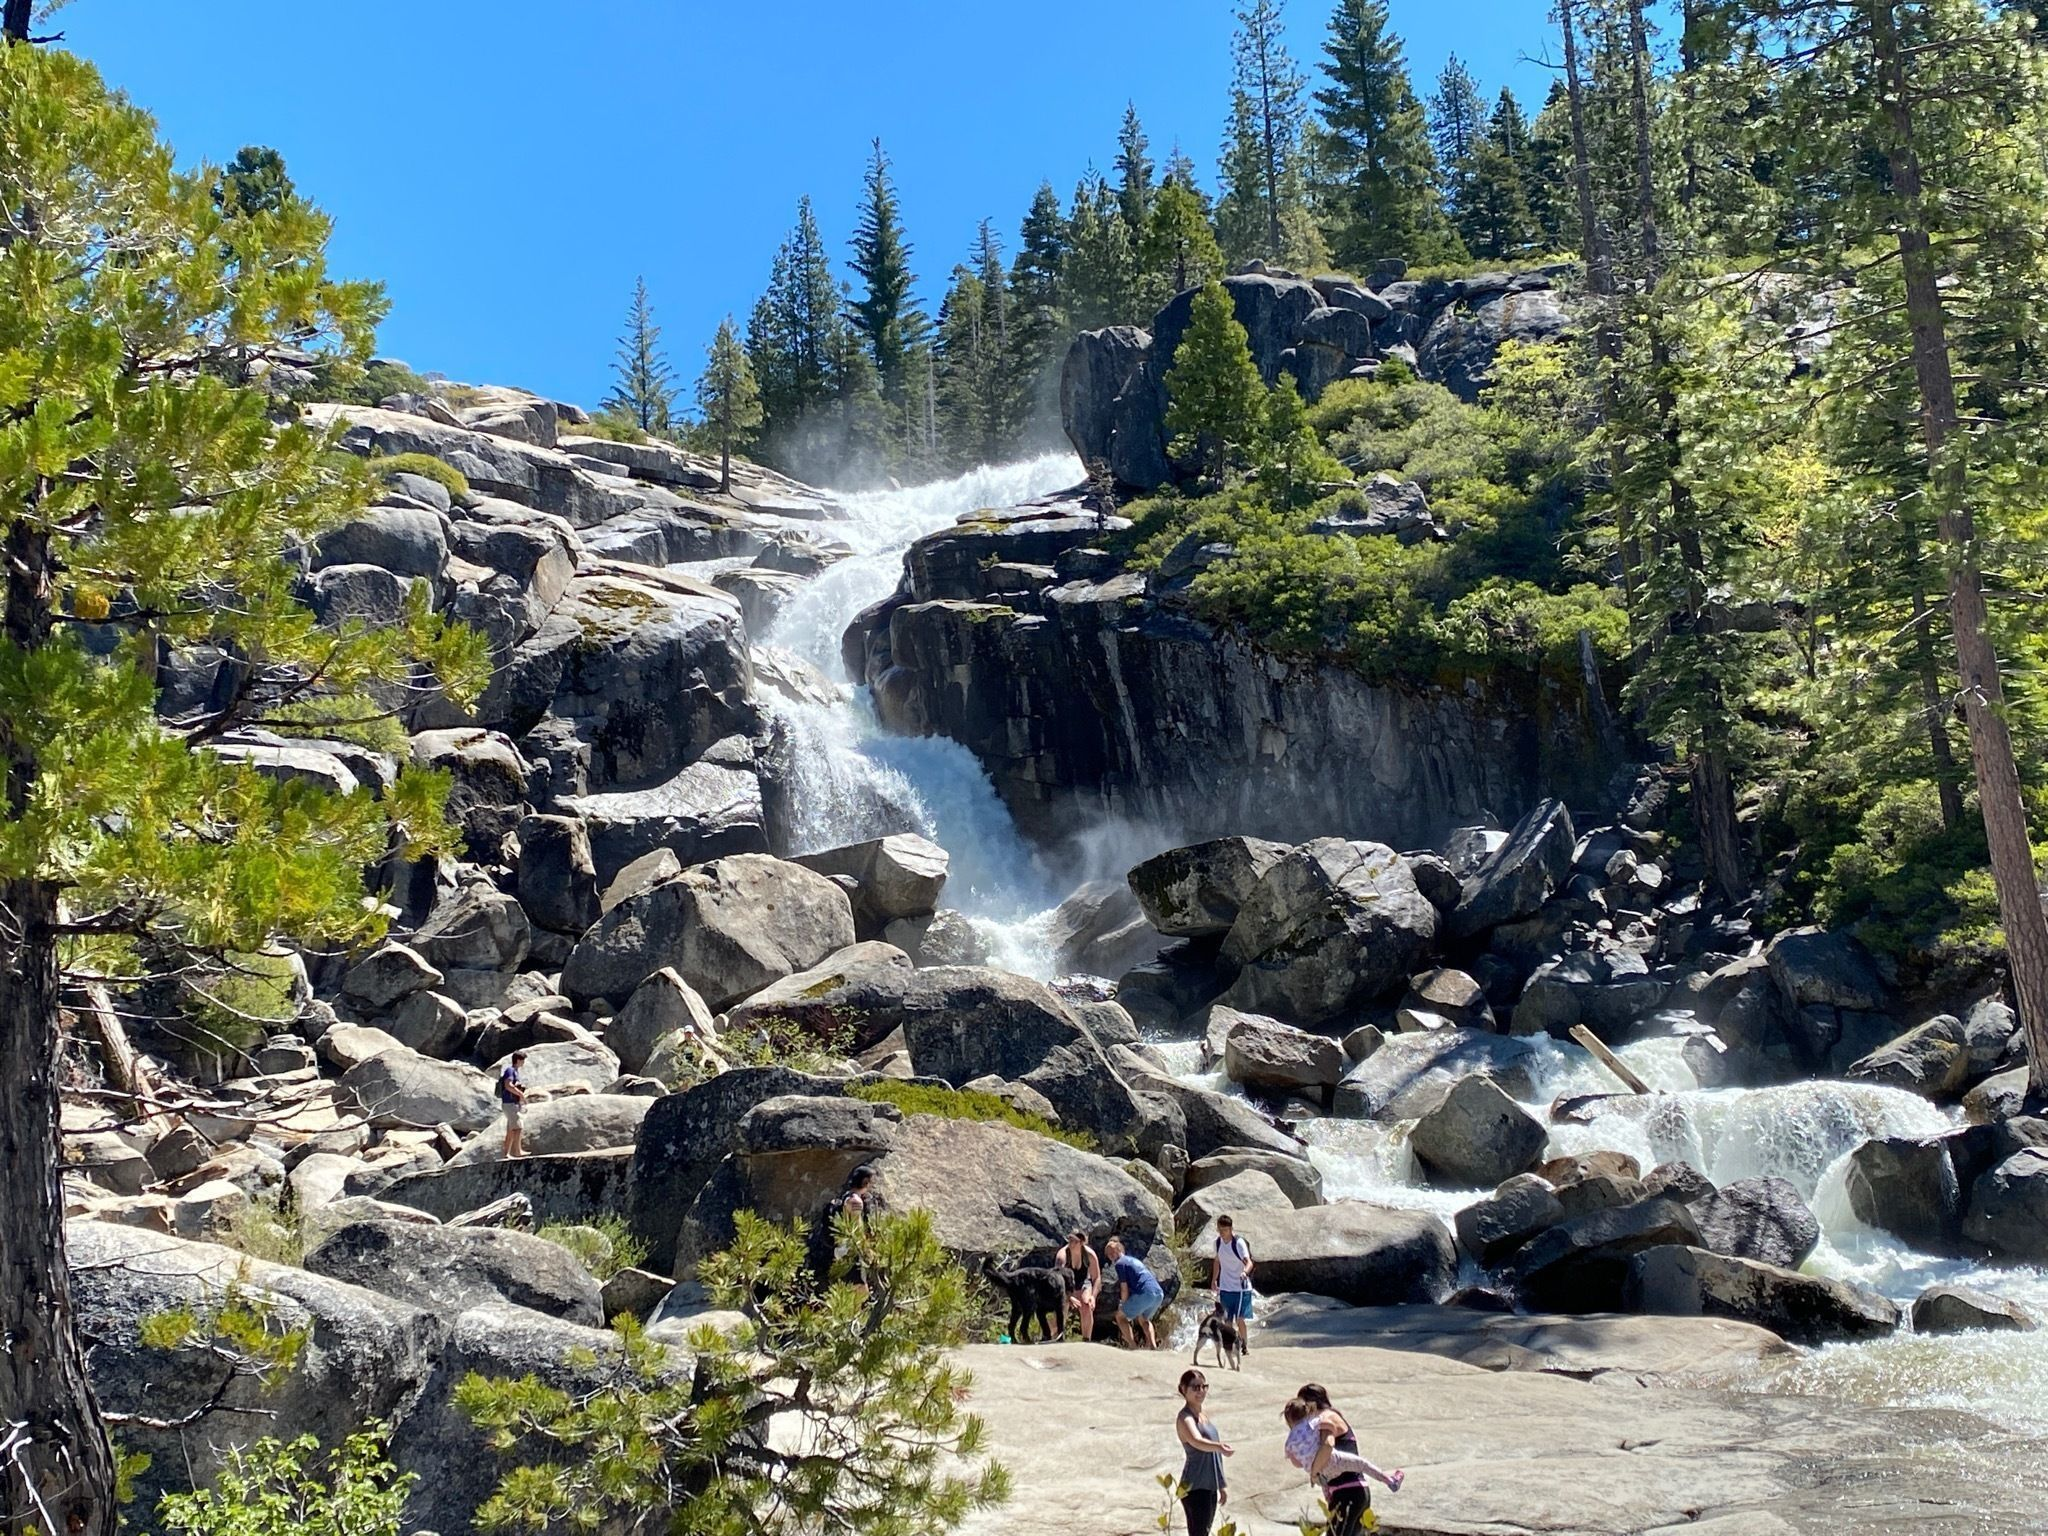 Bassi Falls Trail Is A Beginner-Friendly Waterfall Trail In Northern California That's Great For A Family Hike